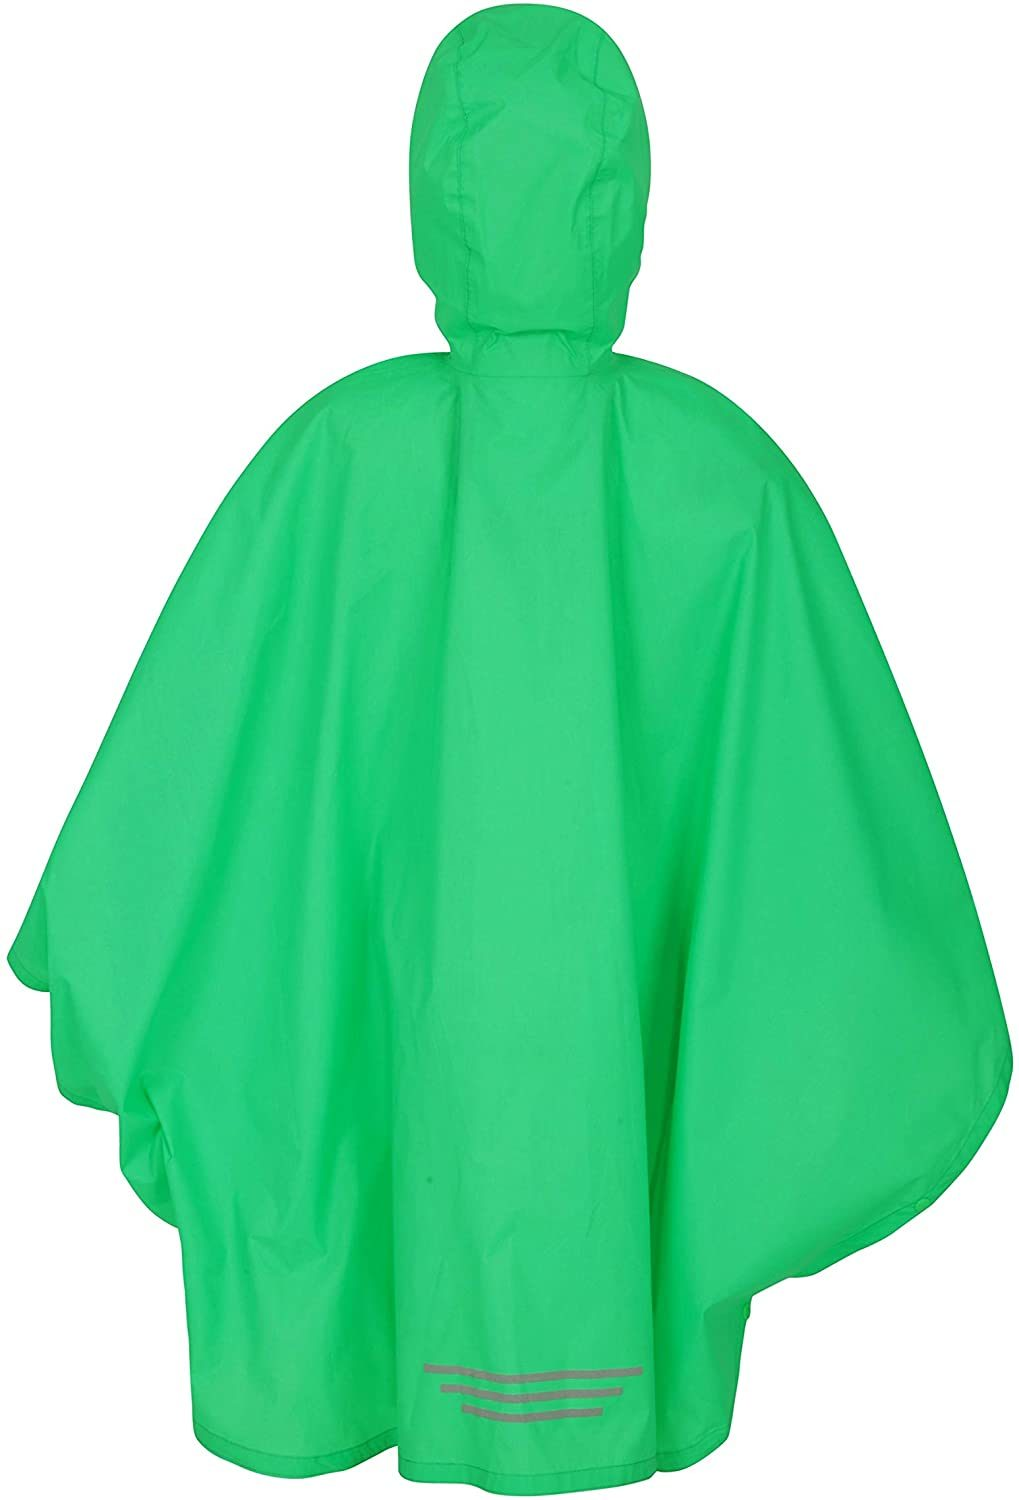 China Kids waterproof Jacket - Breathable Childrens Raincoat, Lightweight  Girls & Boys Rain Wear - Best for Travelling, Outdoors, Hiking - China  Raincoat and Adult Raincoat price